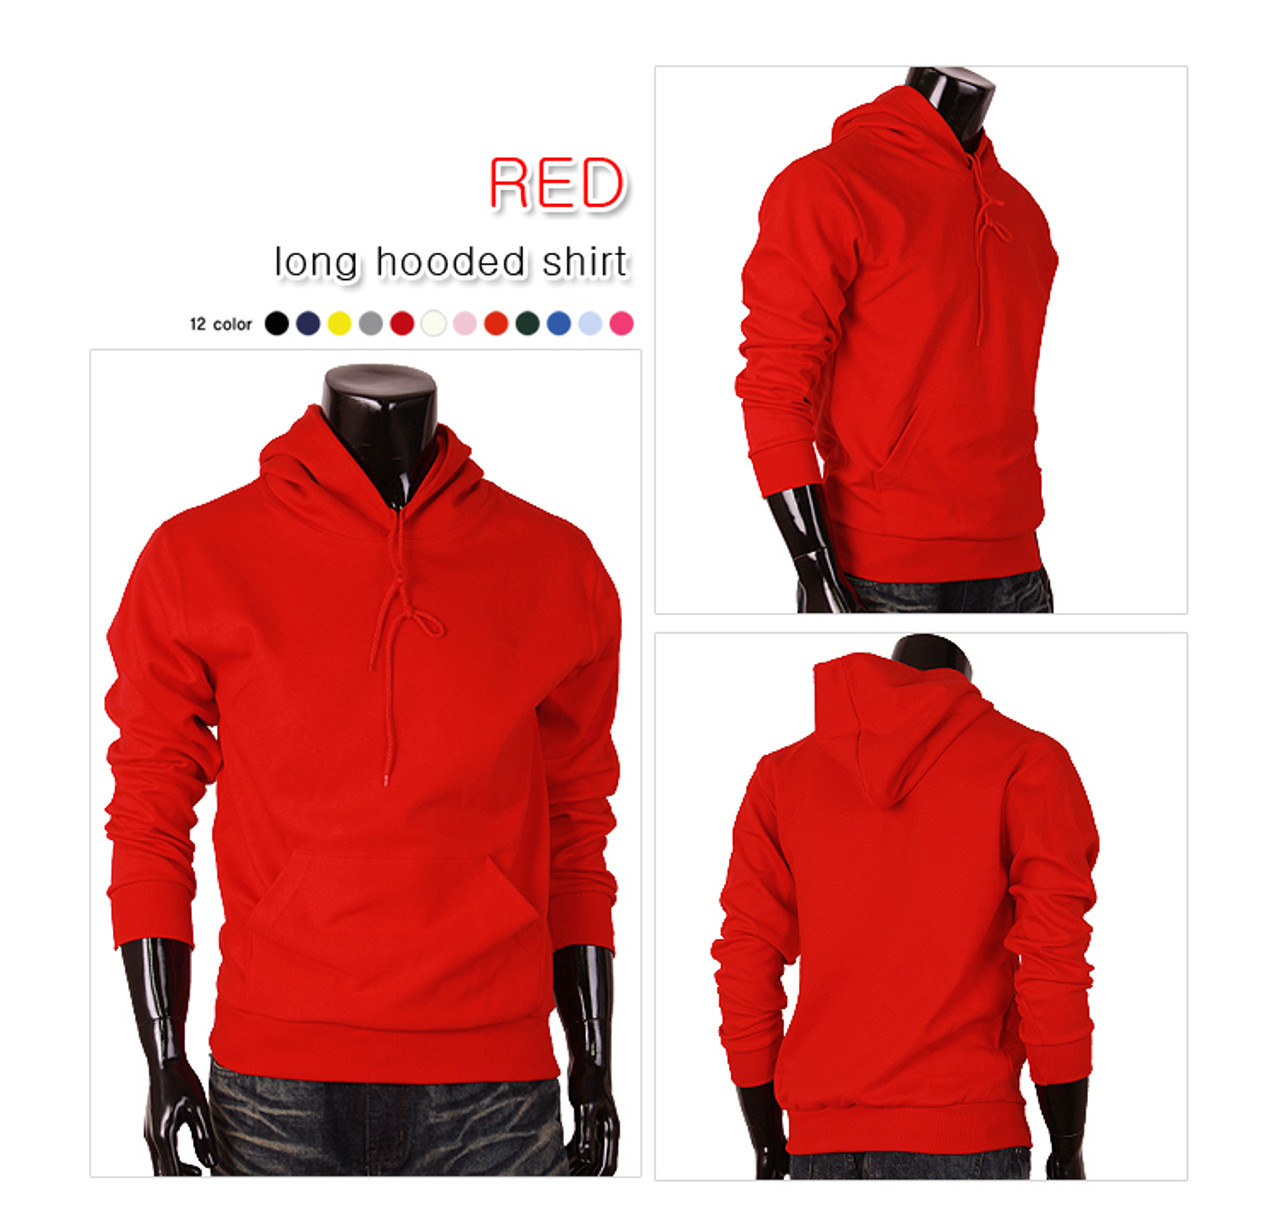 09d60803e0 red hoodie pullover for unisex cotton hoodie t-shirt men hoodie t ...